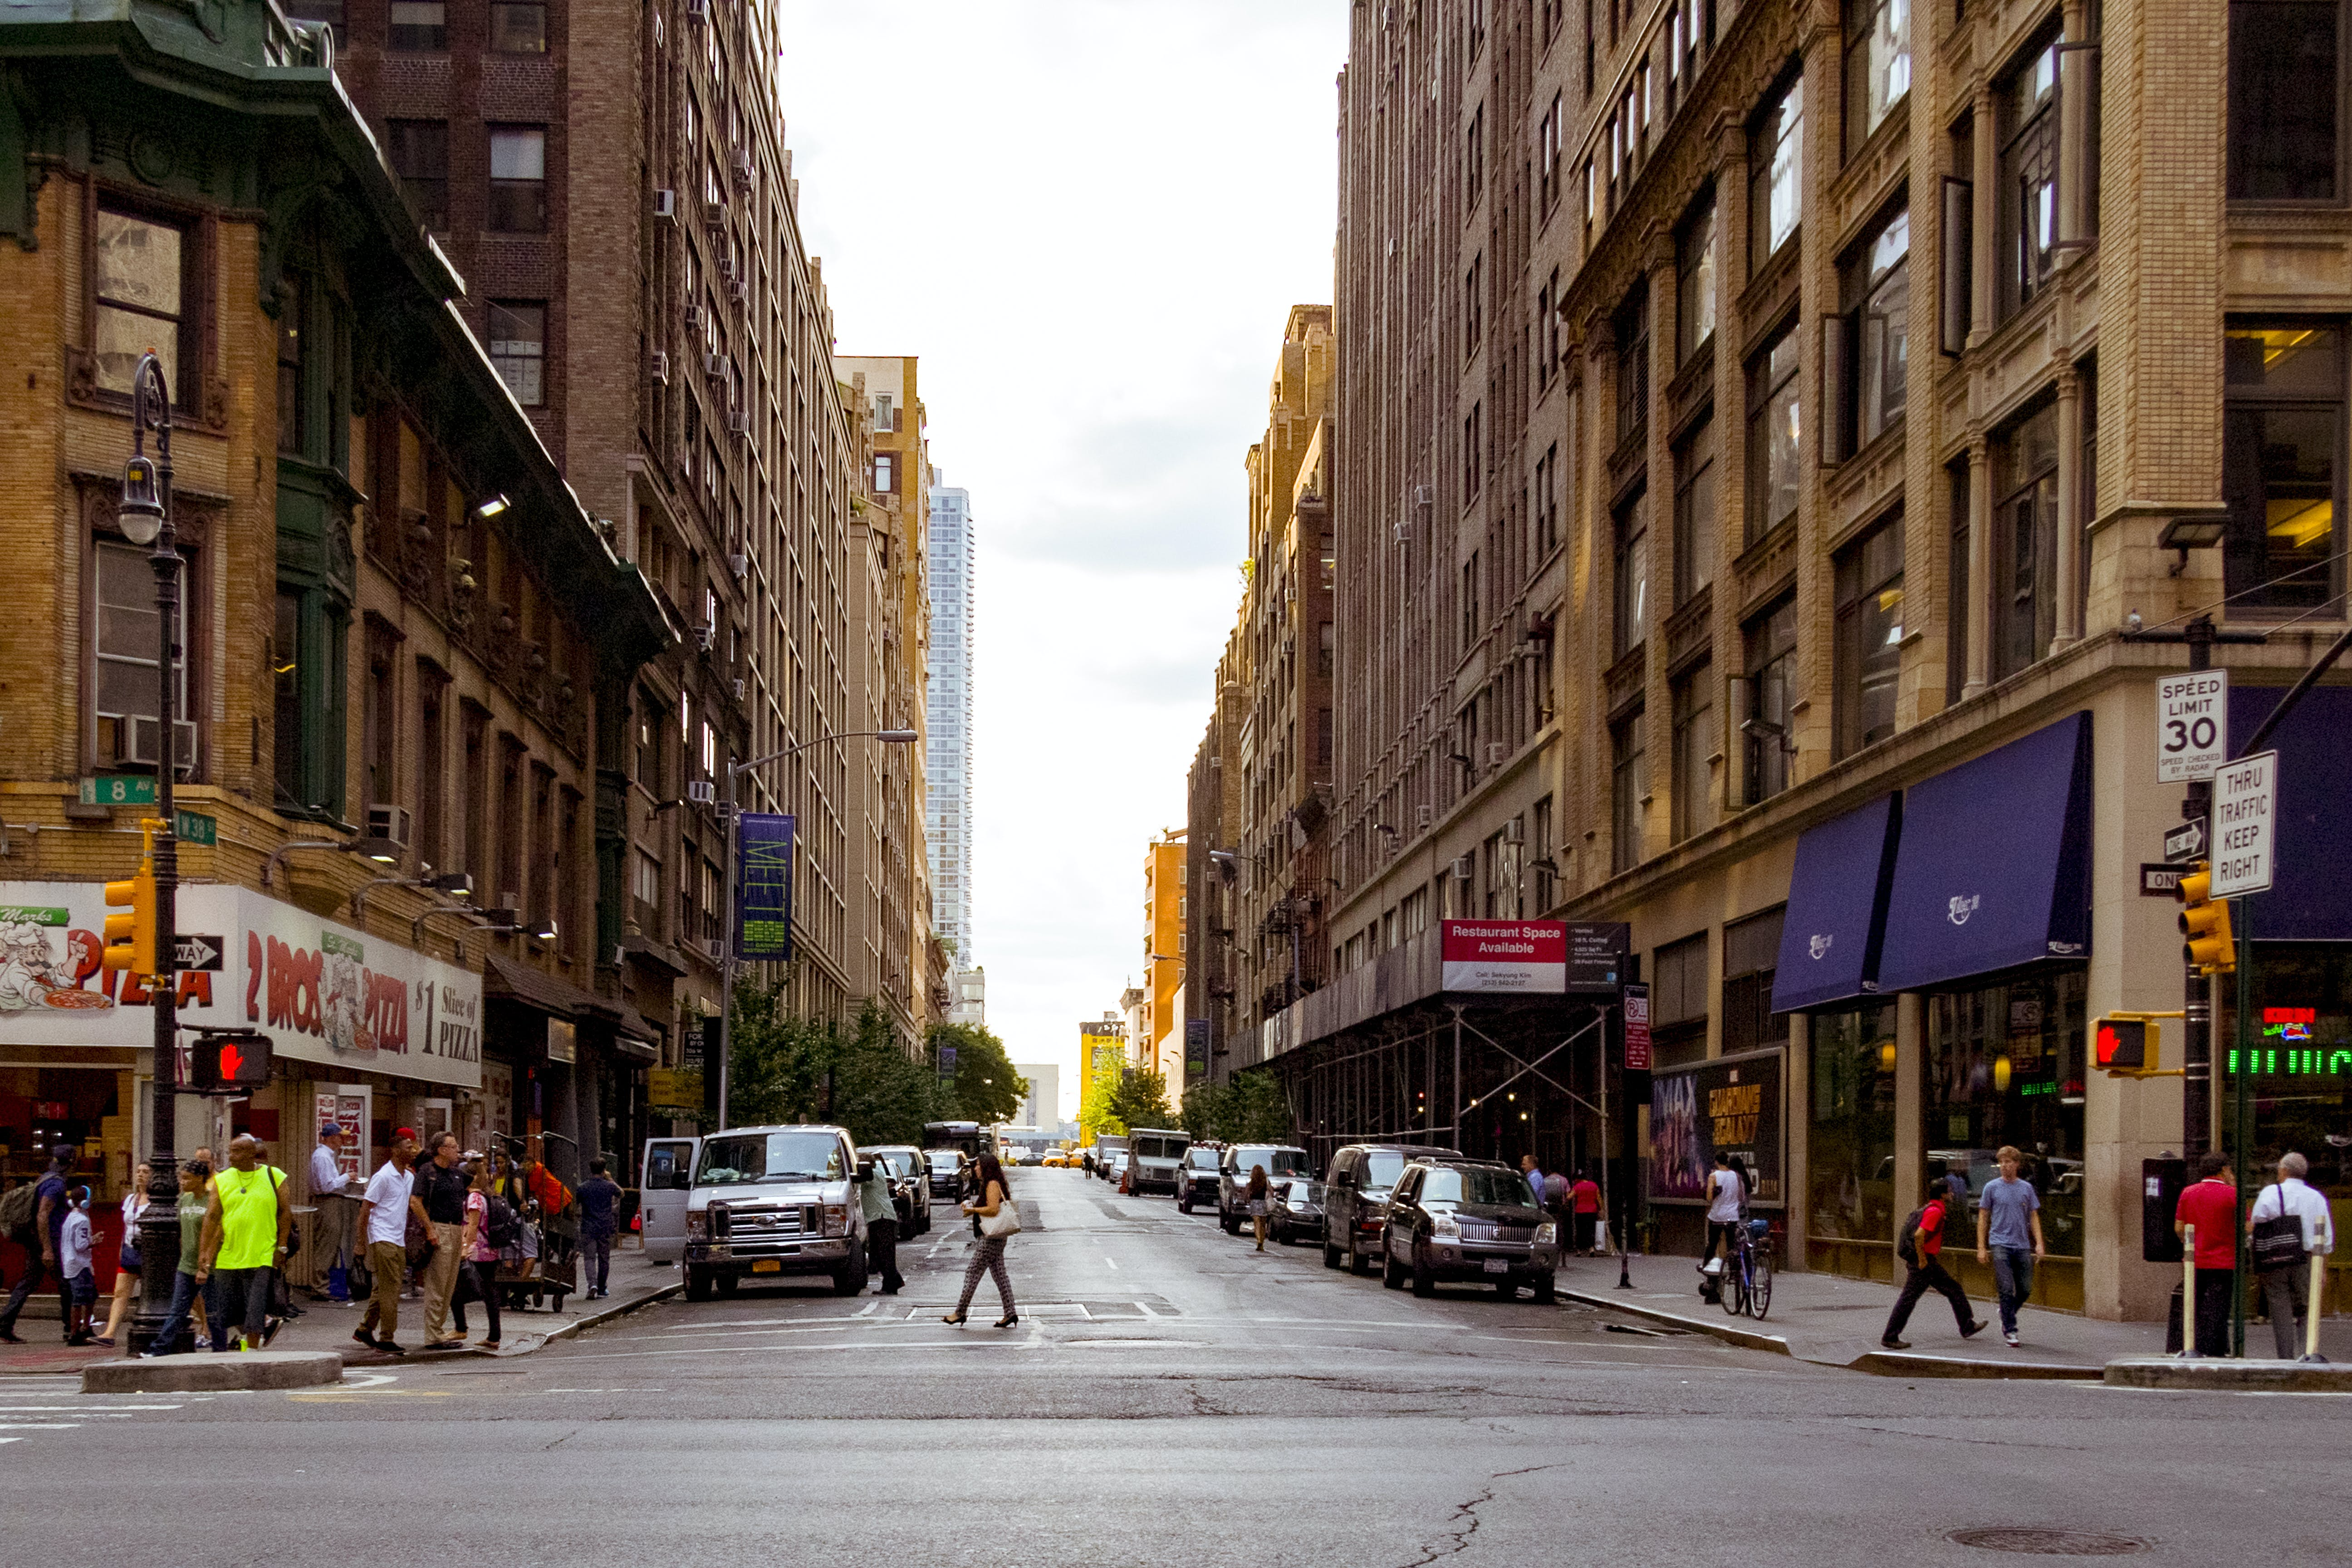 People Walking on Alley Surrounded by High Rise Buildings